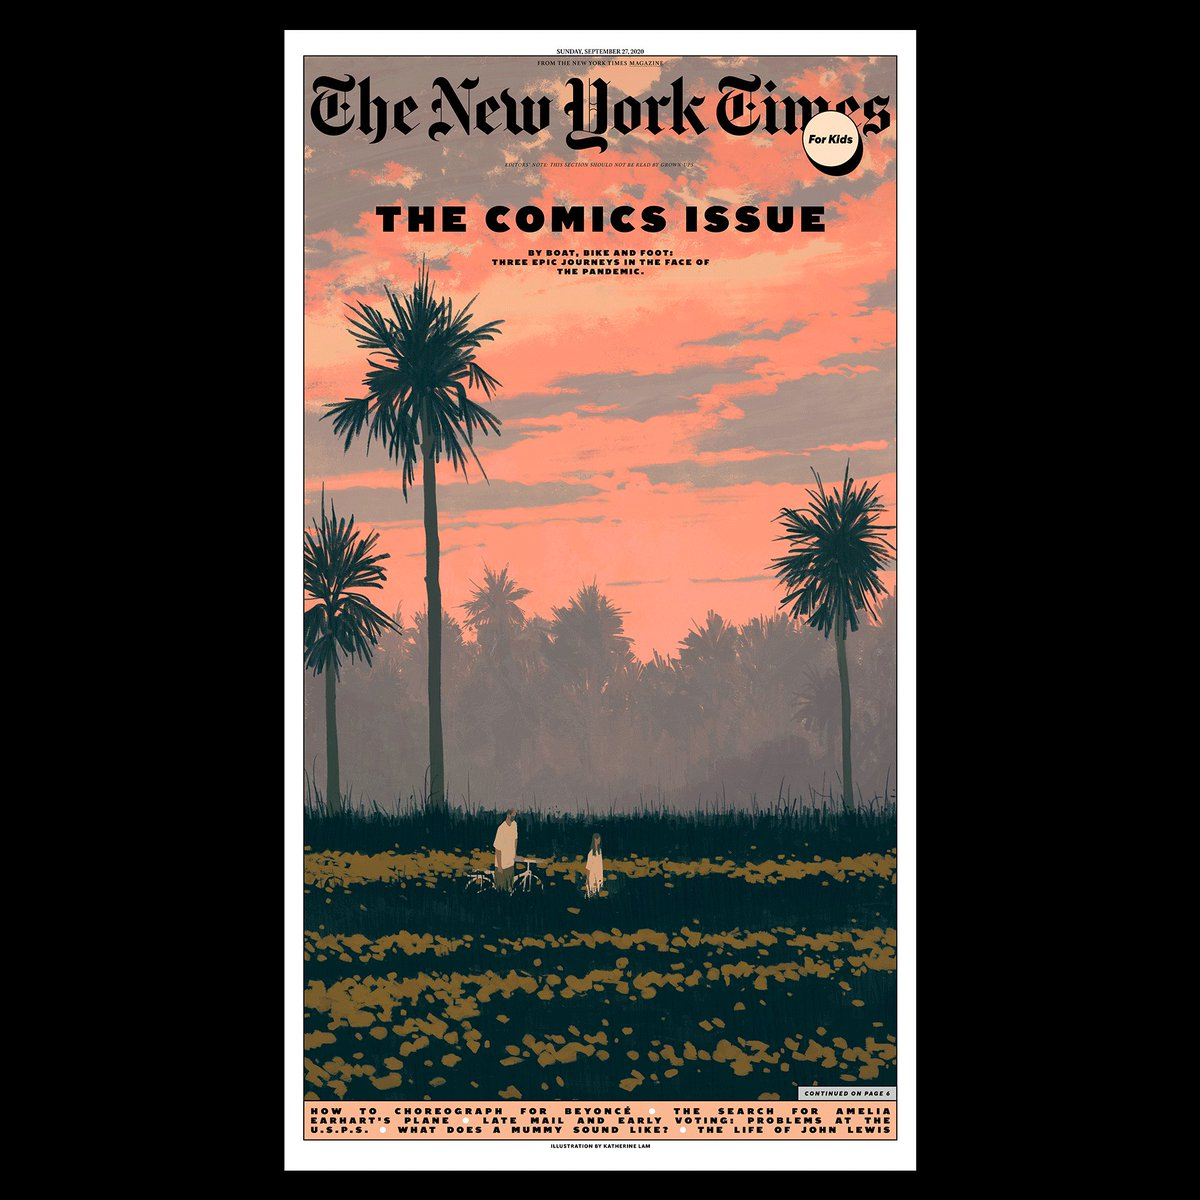 In your @nytimes this Sunday 9/27, our second annual ALL-COMICS ISSUE of The New York Times for Kids! https://t.co/KnKvAV42v9